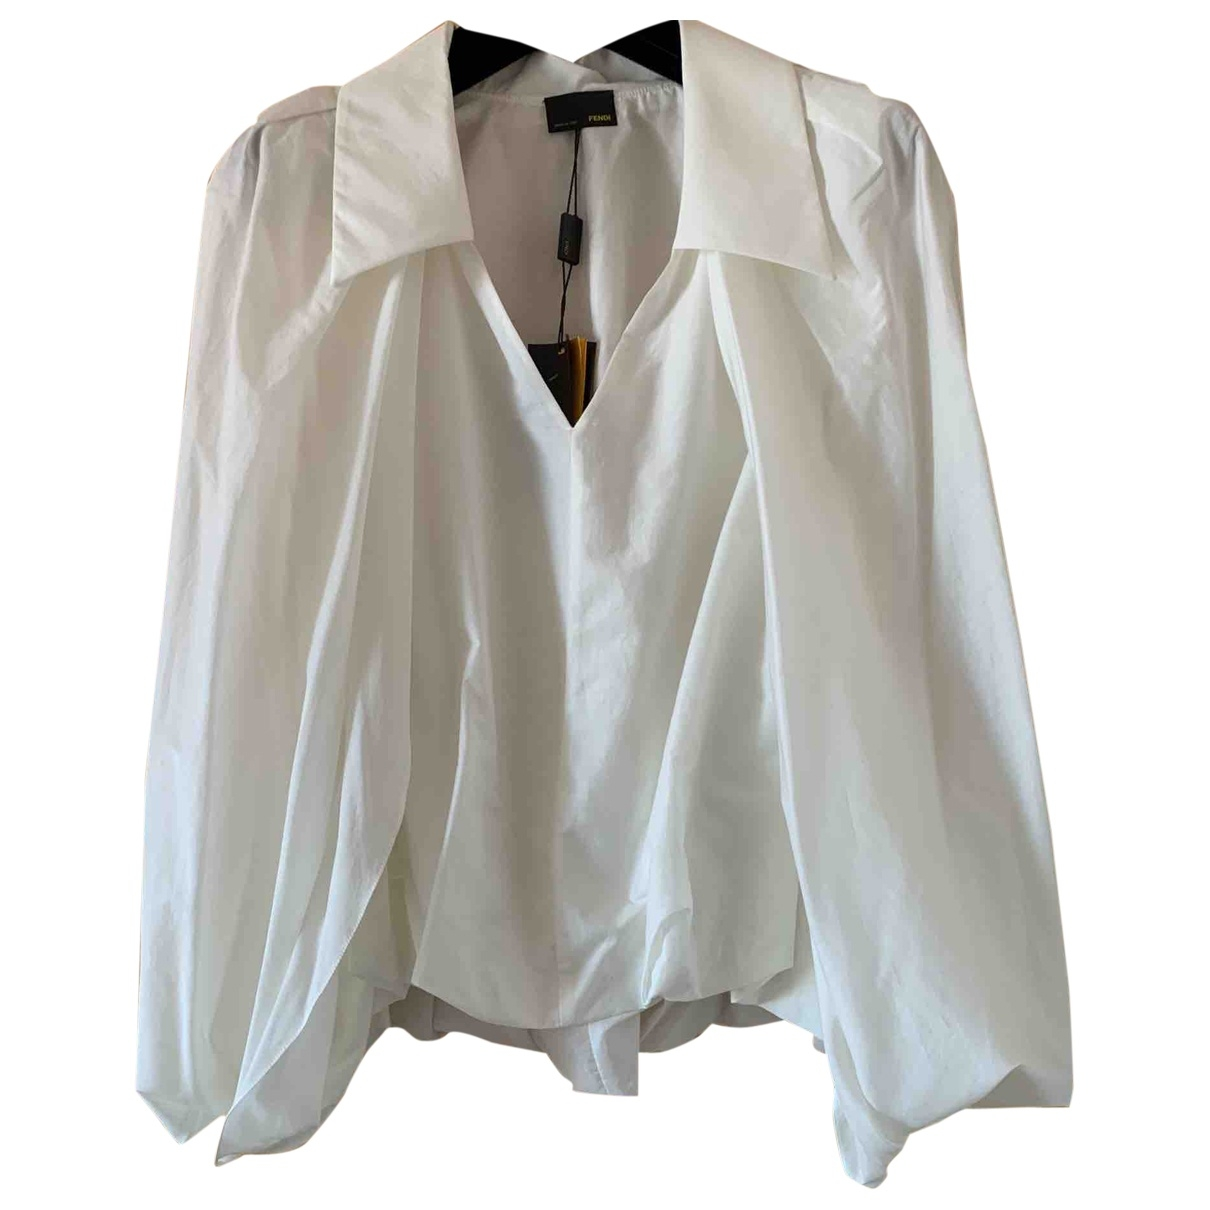 Fendi \N White Cotton  top for Women 38 IT